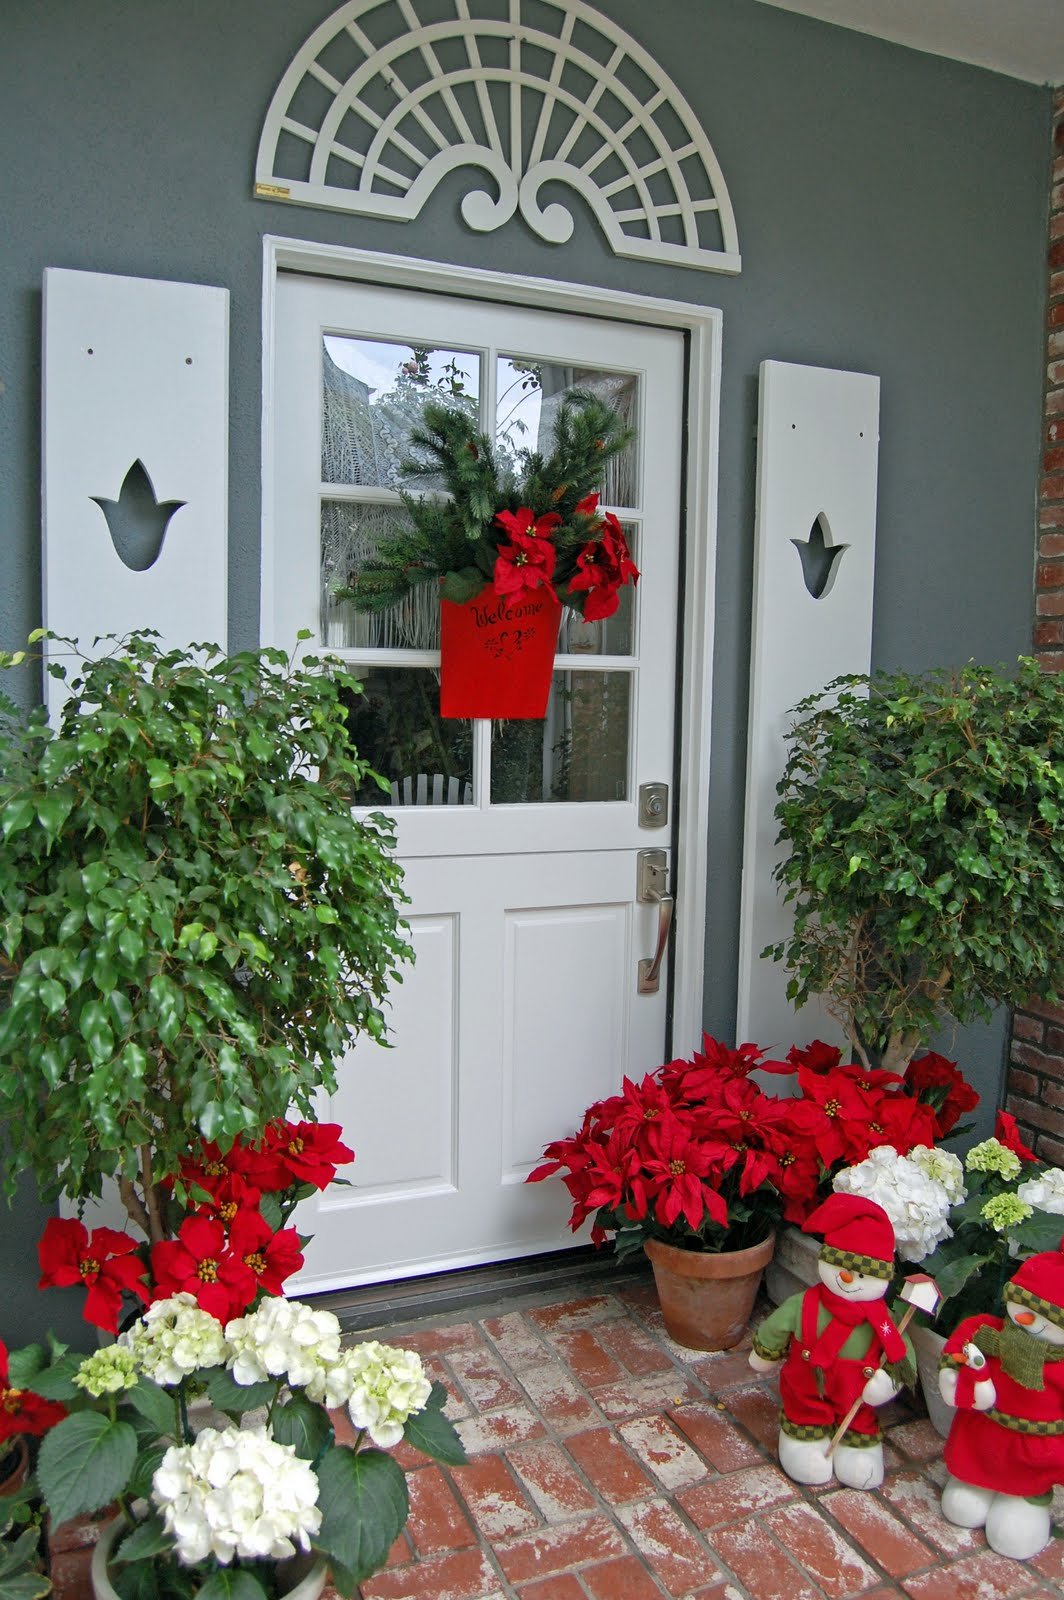 CHRISTMAS ENTRANCE AND DOOR. Christmas Decor Plants